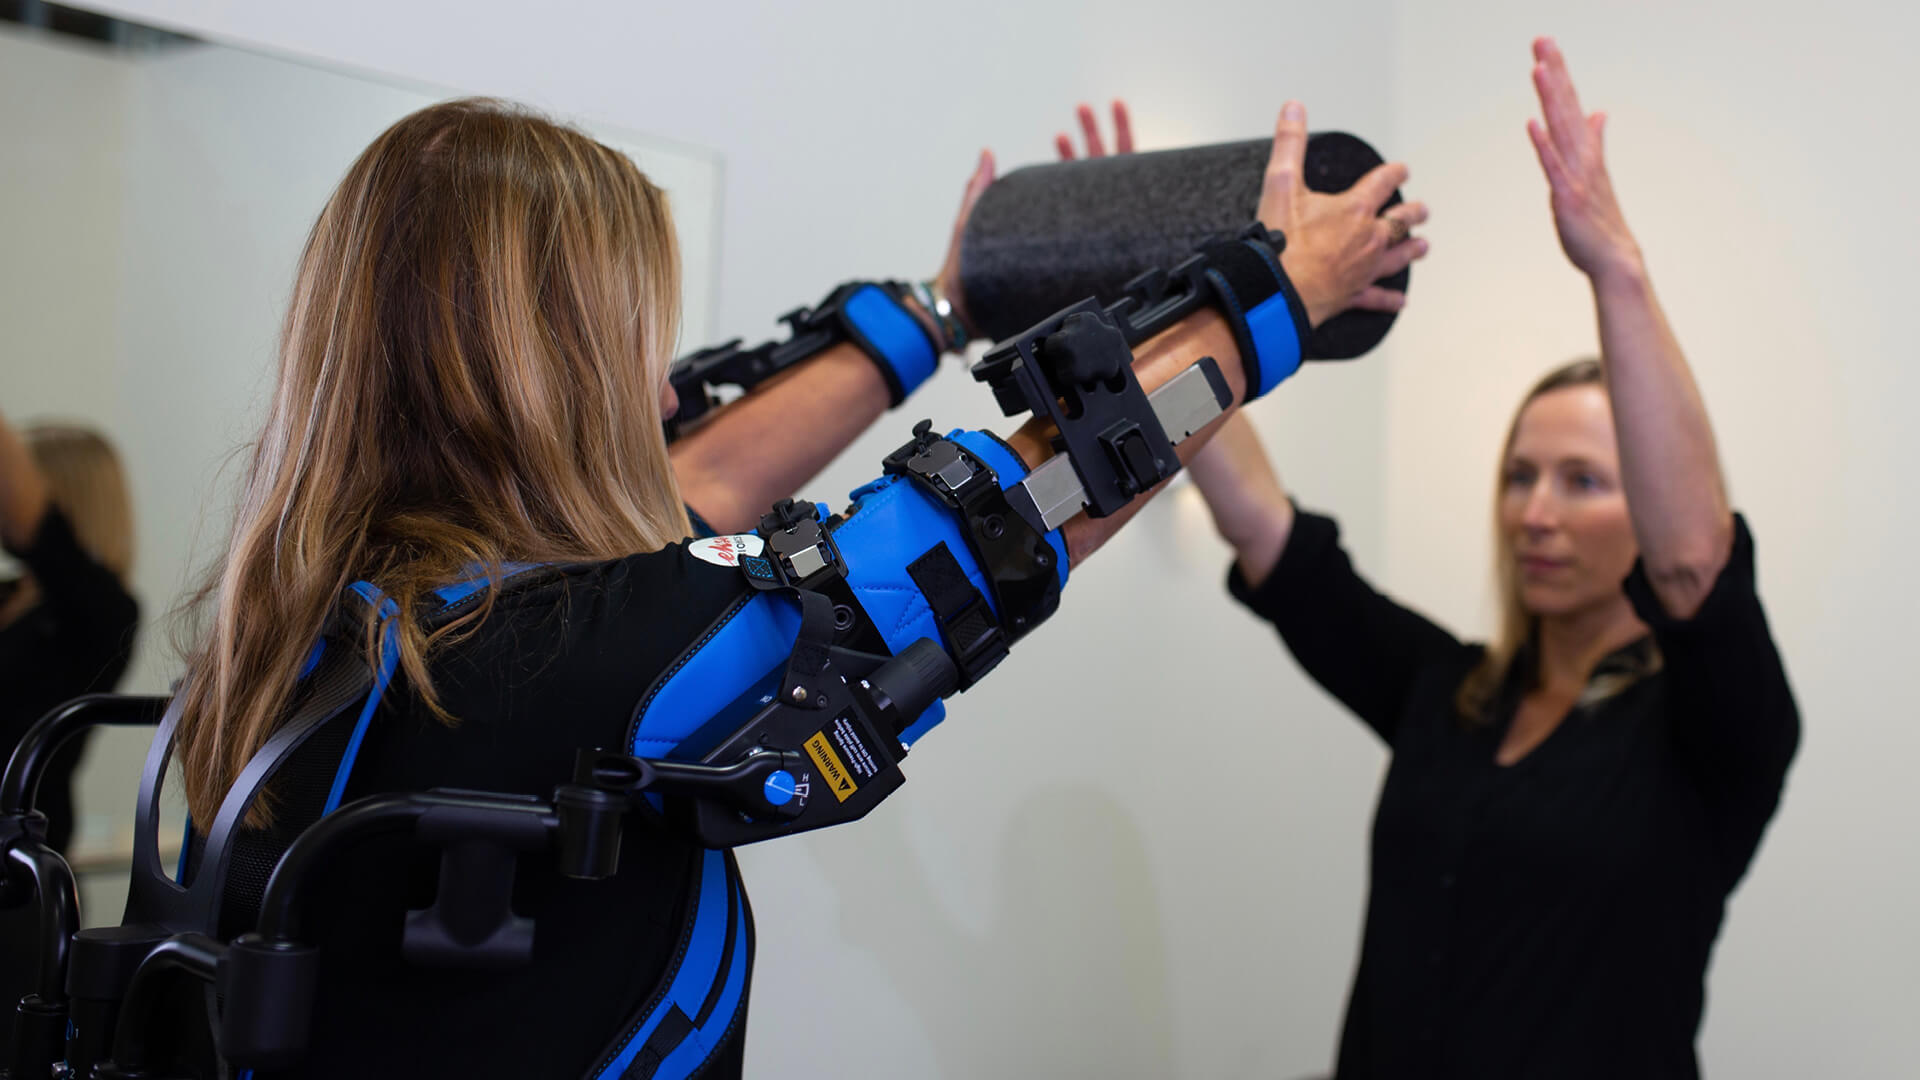 EksoUE, an exoskeleton that works as a rehabilitation tool for the upper extremities | Ekso Bionics, in collaboration with Berkeley Robotics and Human Engineering Laboratory of the University of California | STIRworld